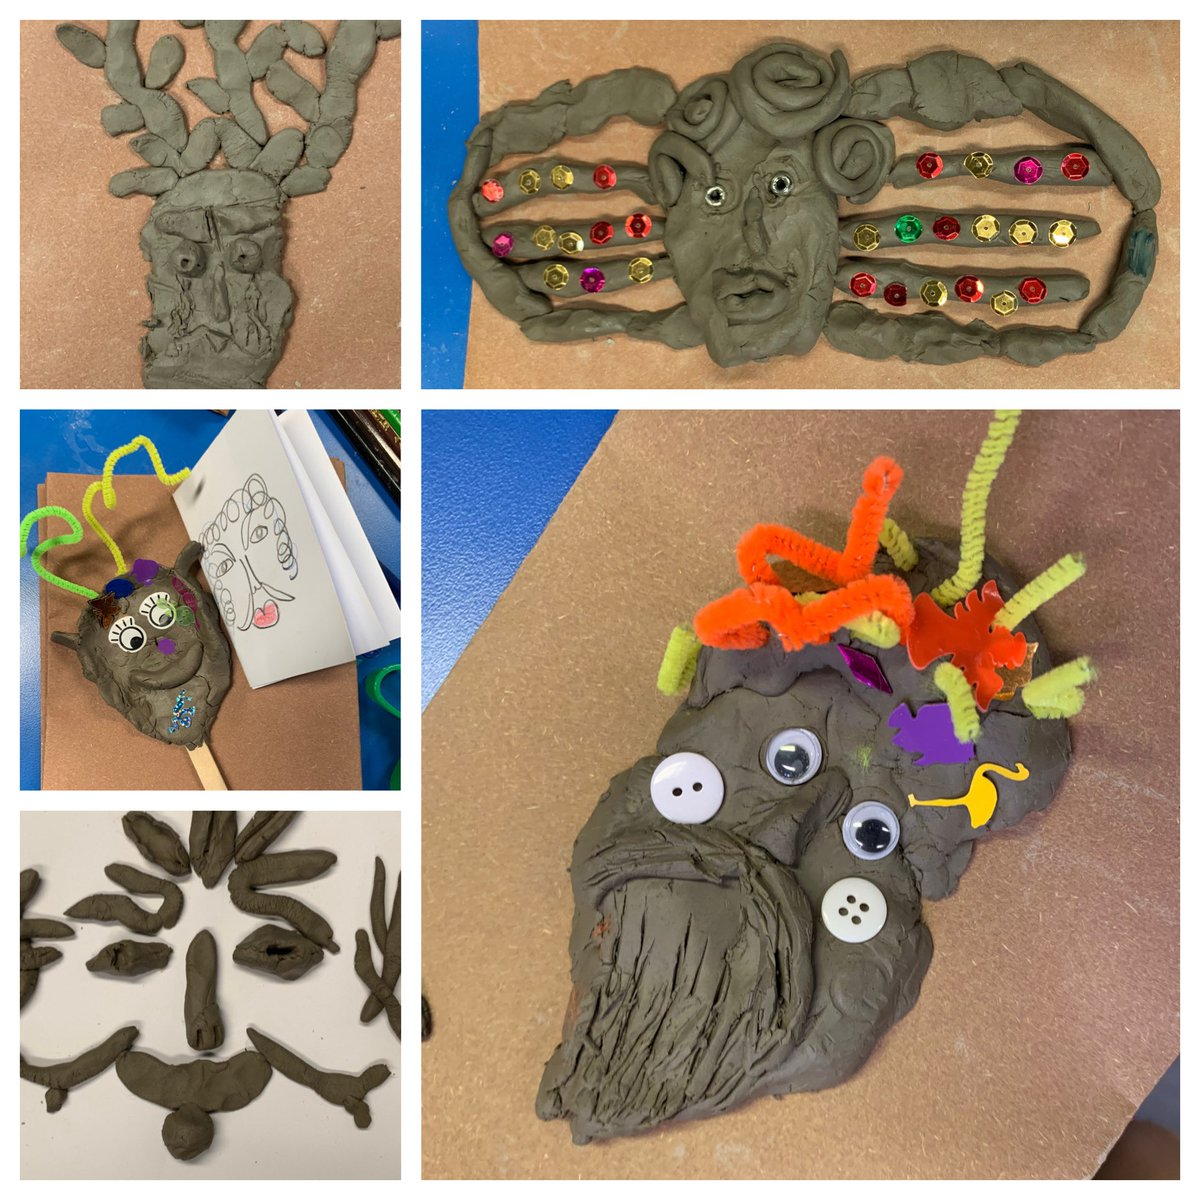 Check out the cheeky #clay creations inspired by the architecture of @charlton_house that were made by the loads of talented kids that came to my session today. ✌️ @GreenwichHT #Charlton #HalfTerm #MuseumEd